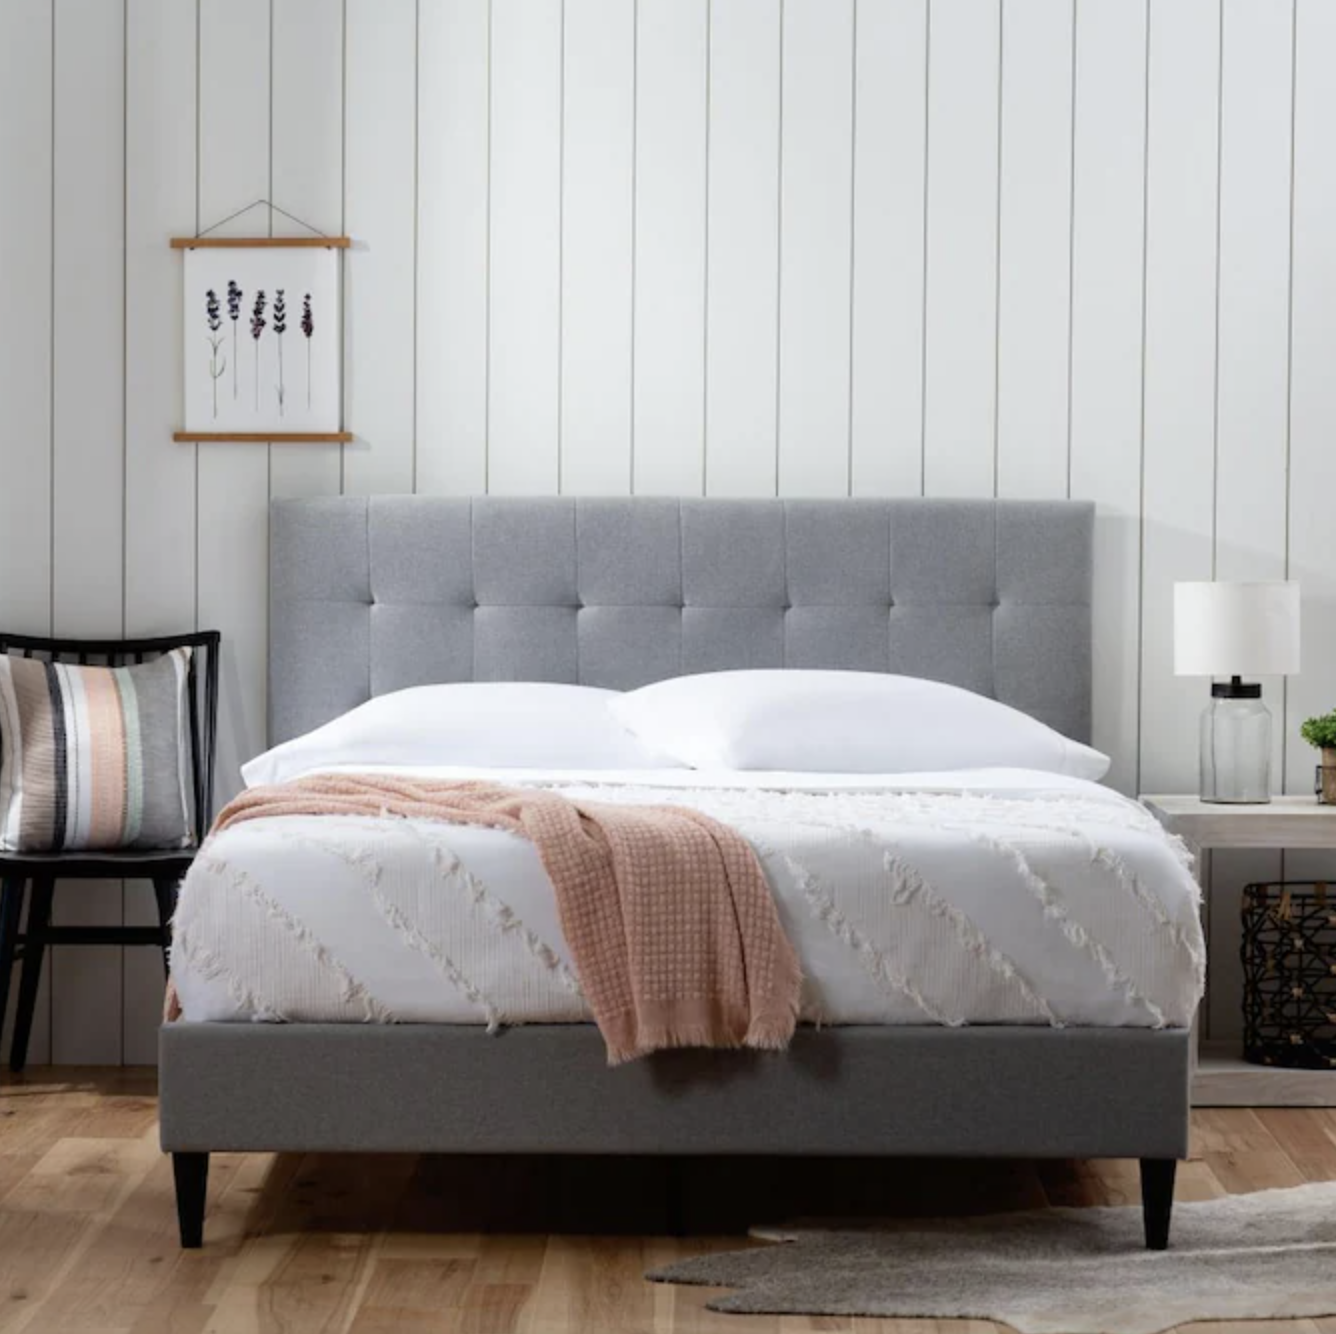 Gray Brookside full-size bed placed in bedroom